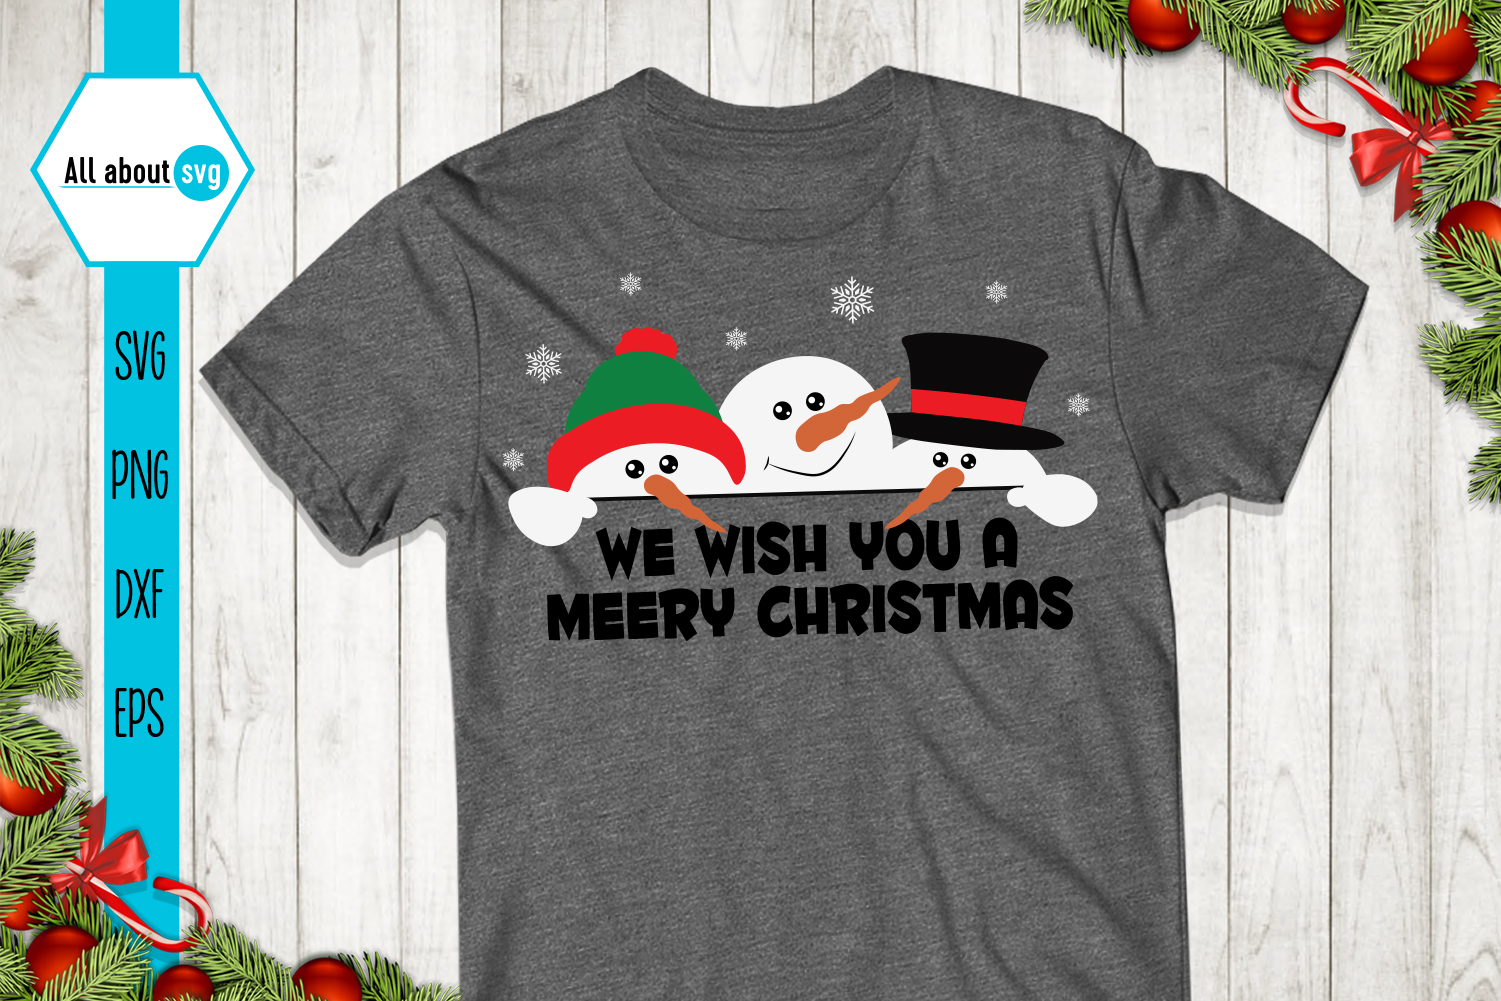 Snowman Svg, We wish You a Merry Christmas Svg example image 2